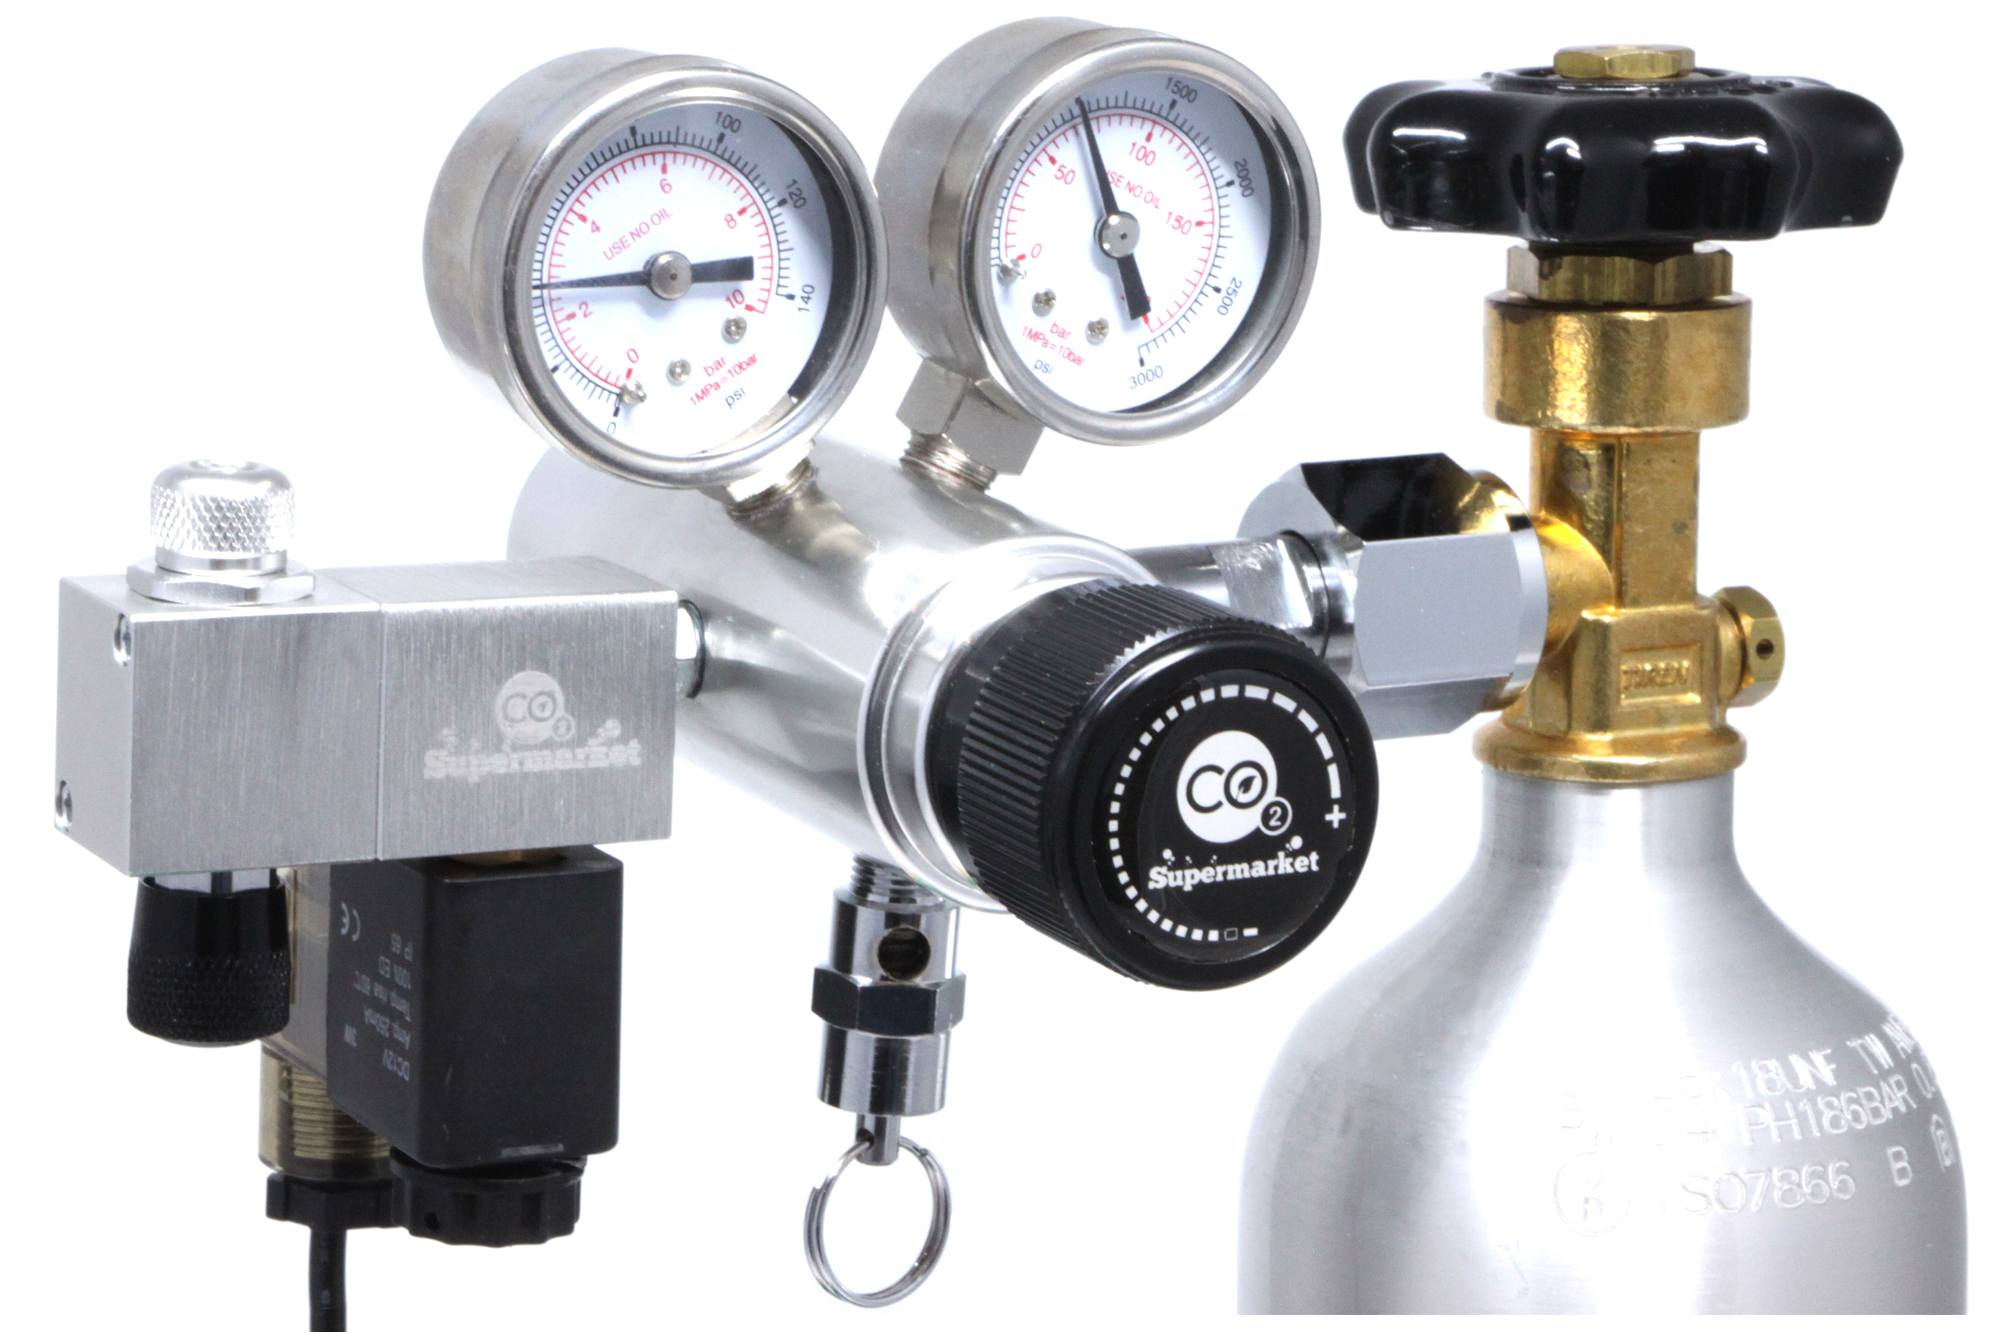 Ultimate-Pro Dual Stage CO2 Regulator and Solenoid